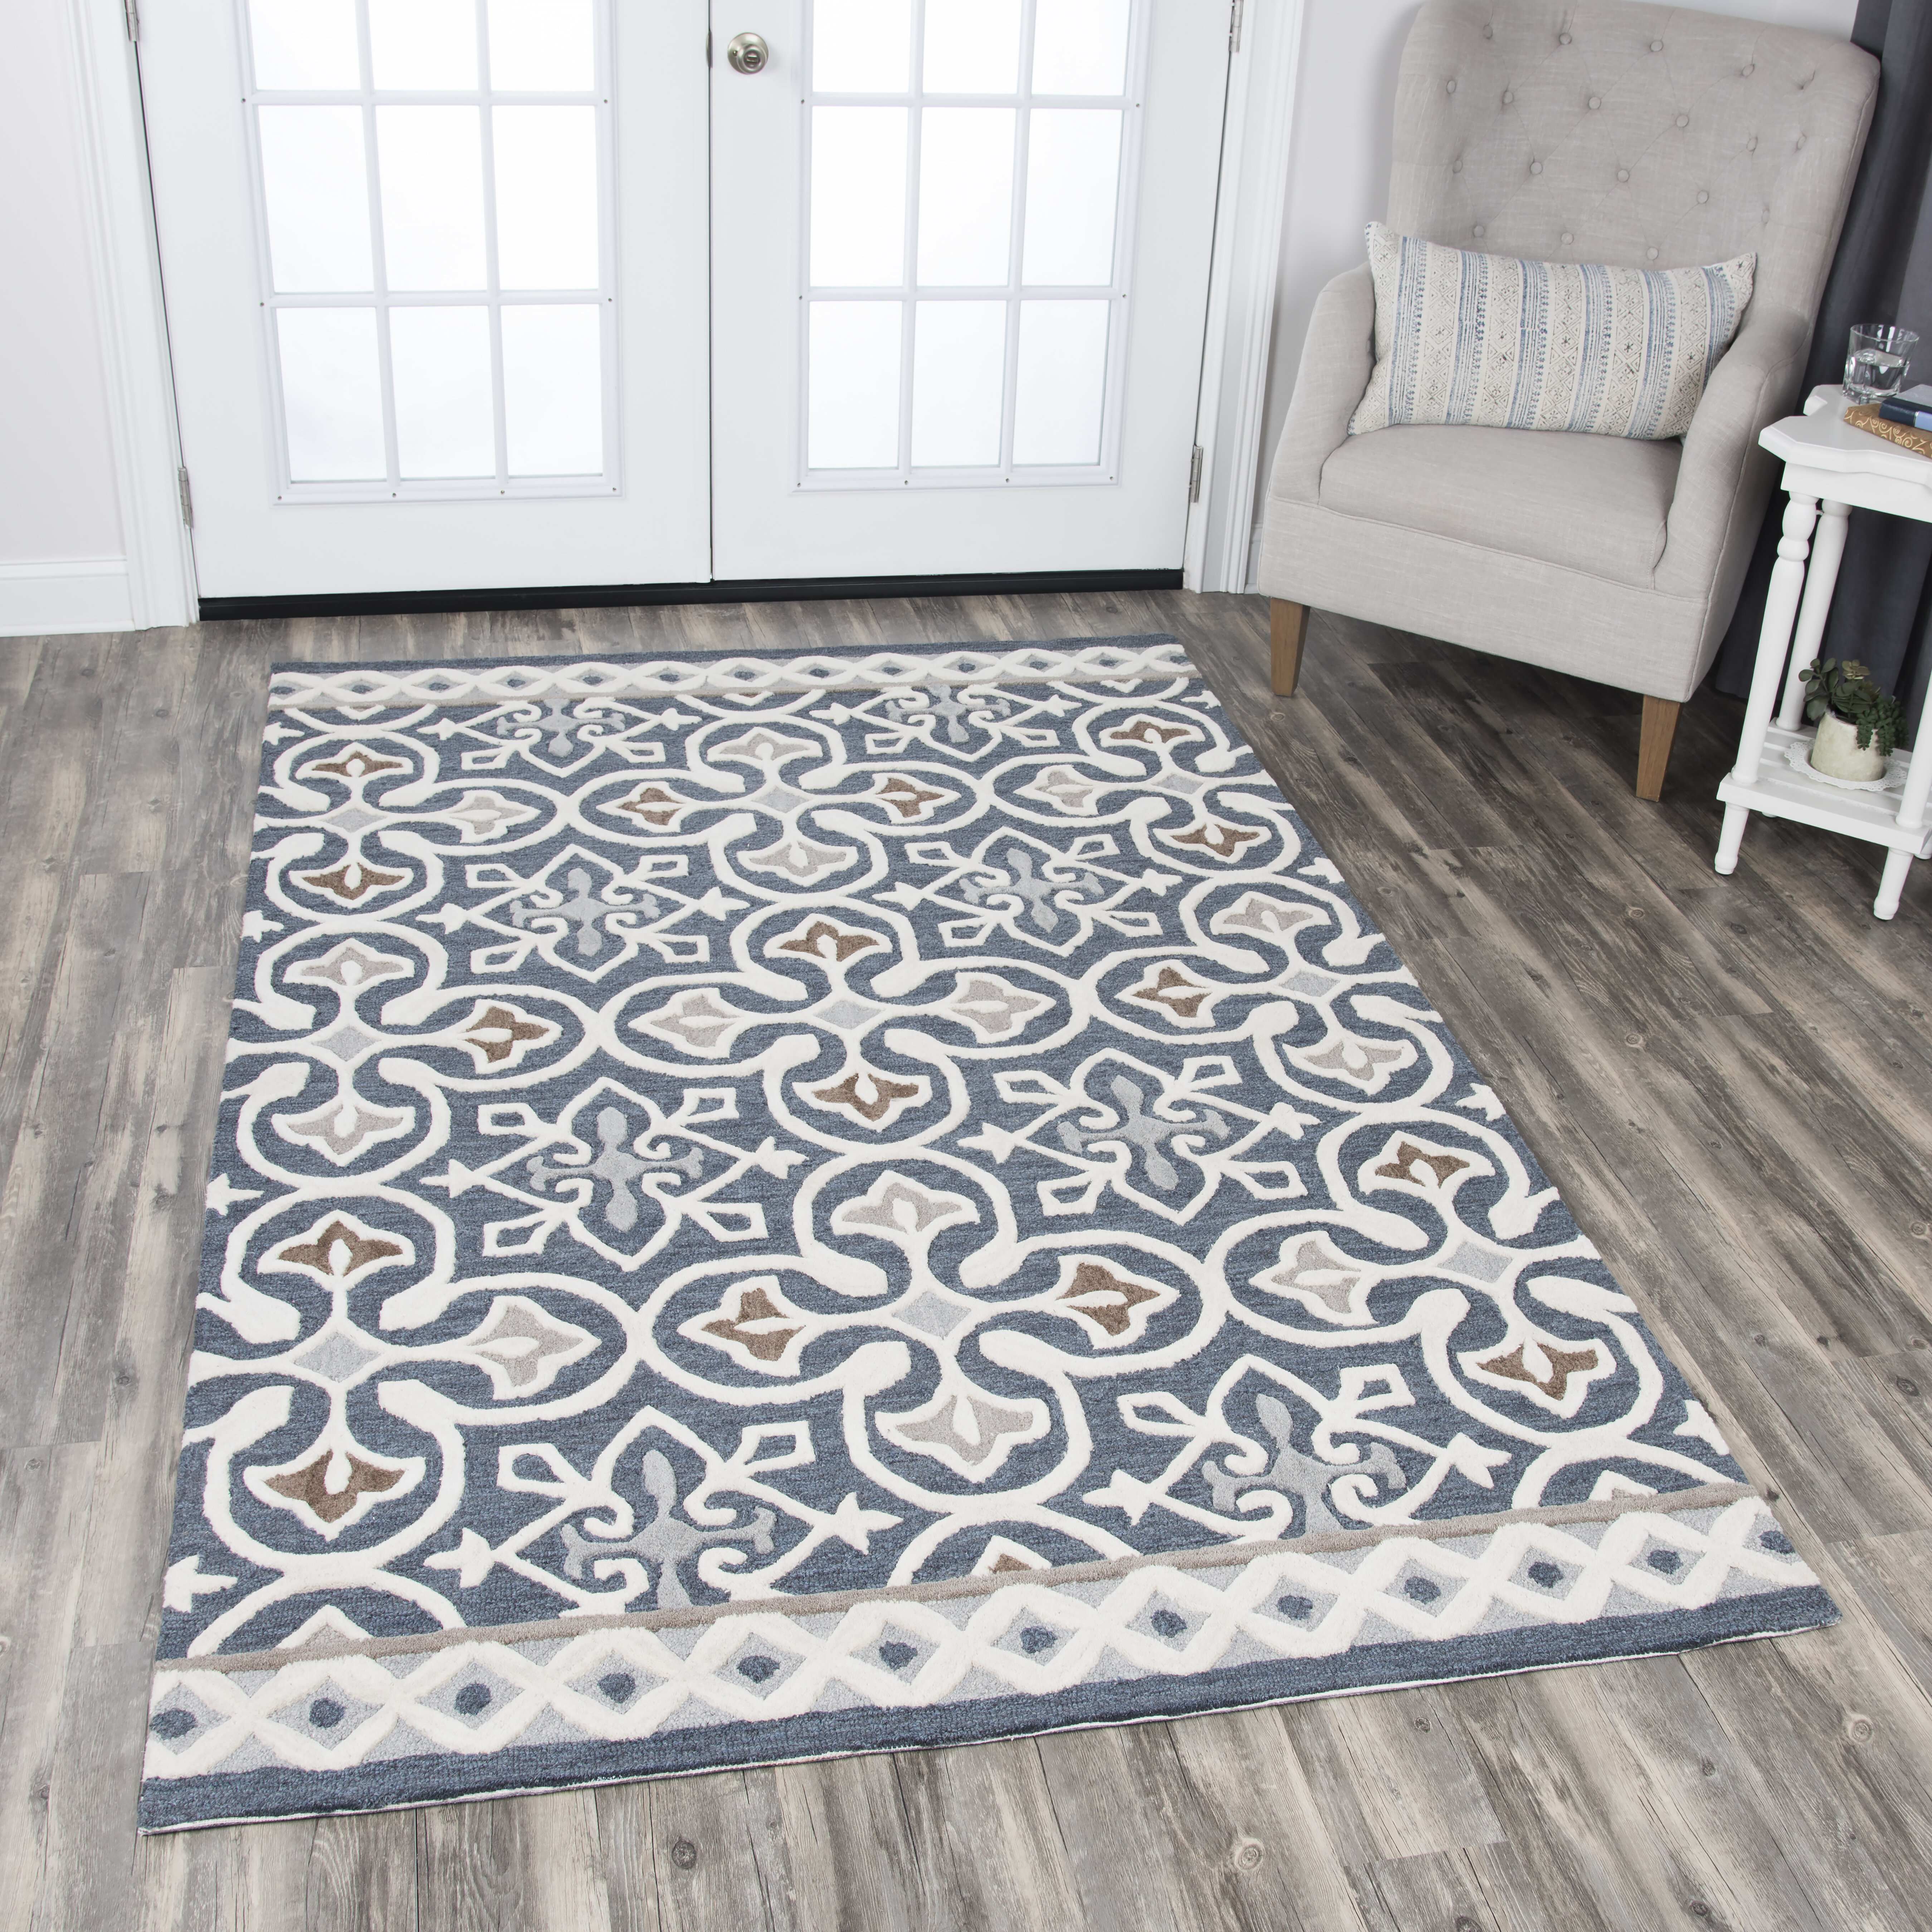 Nordmeyer Hand Tufted Blue Gray Area Rug Reviews Birch Lane